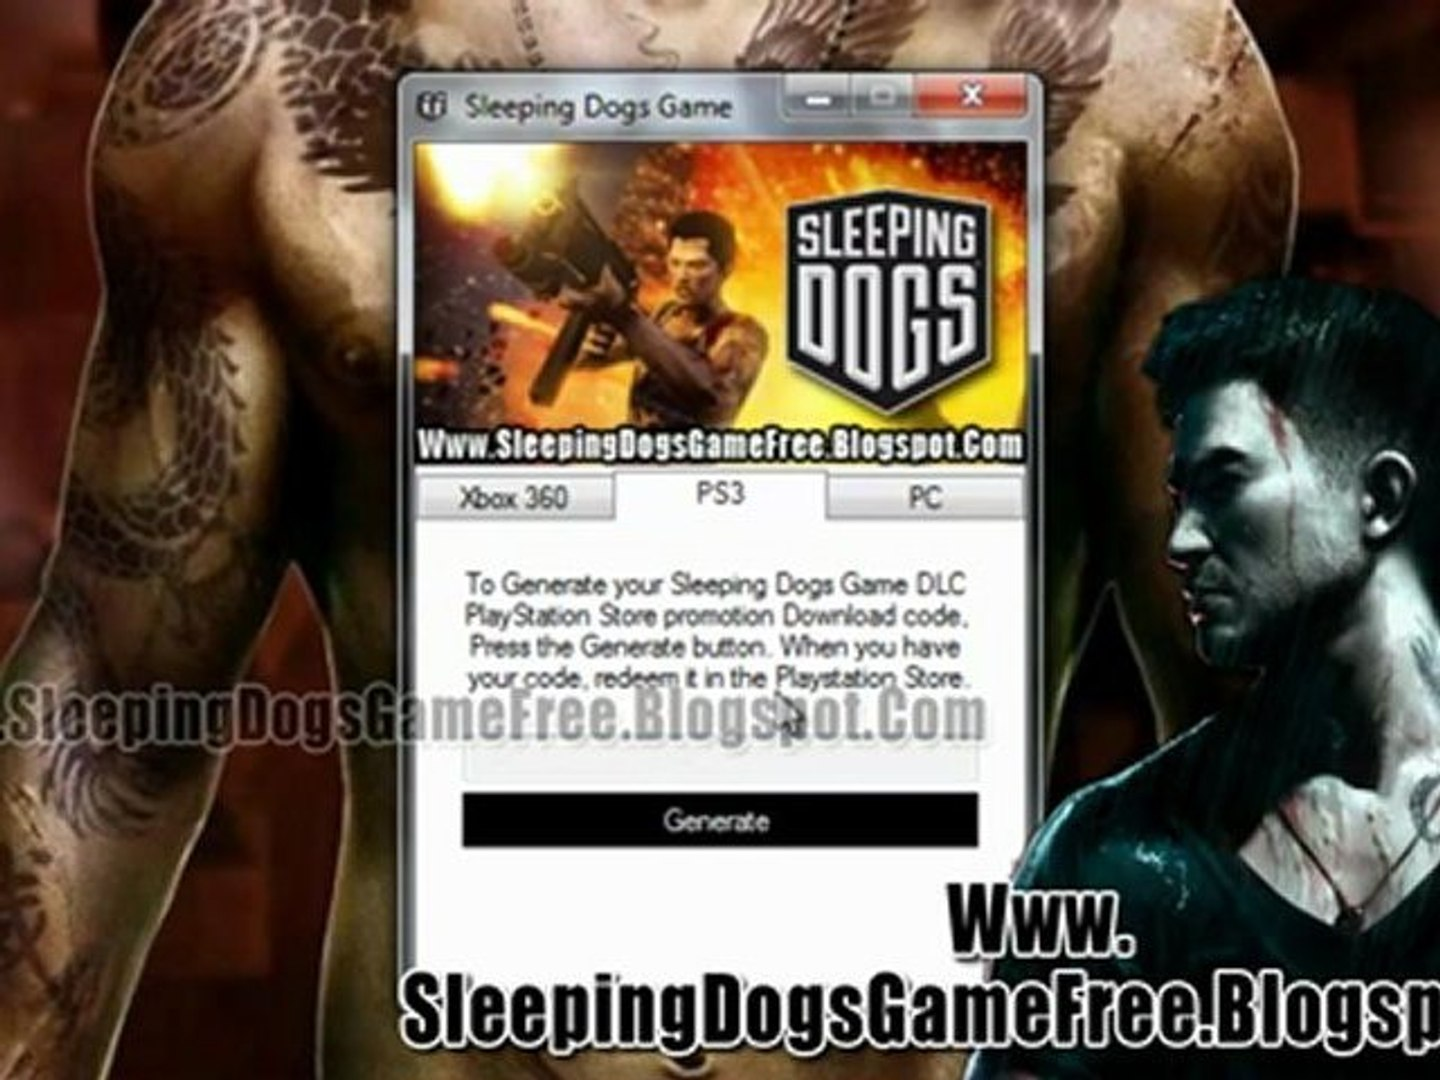 Sleeping Dogs Game Crack - Free Download - Xbox 360 - PS3 - PC